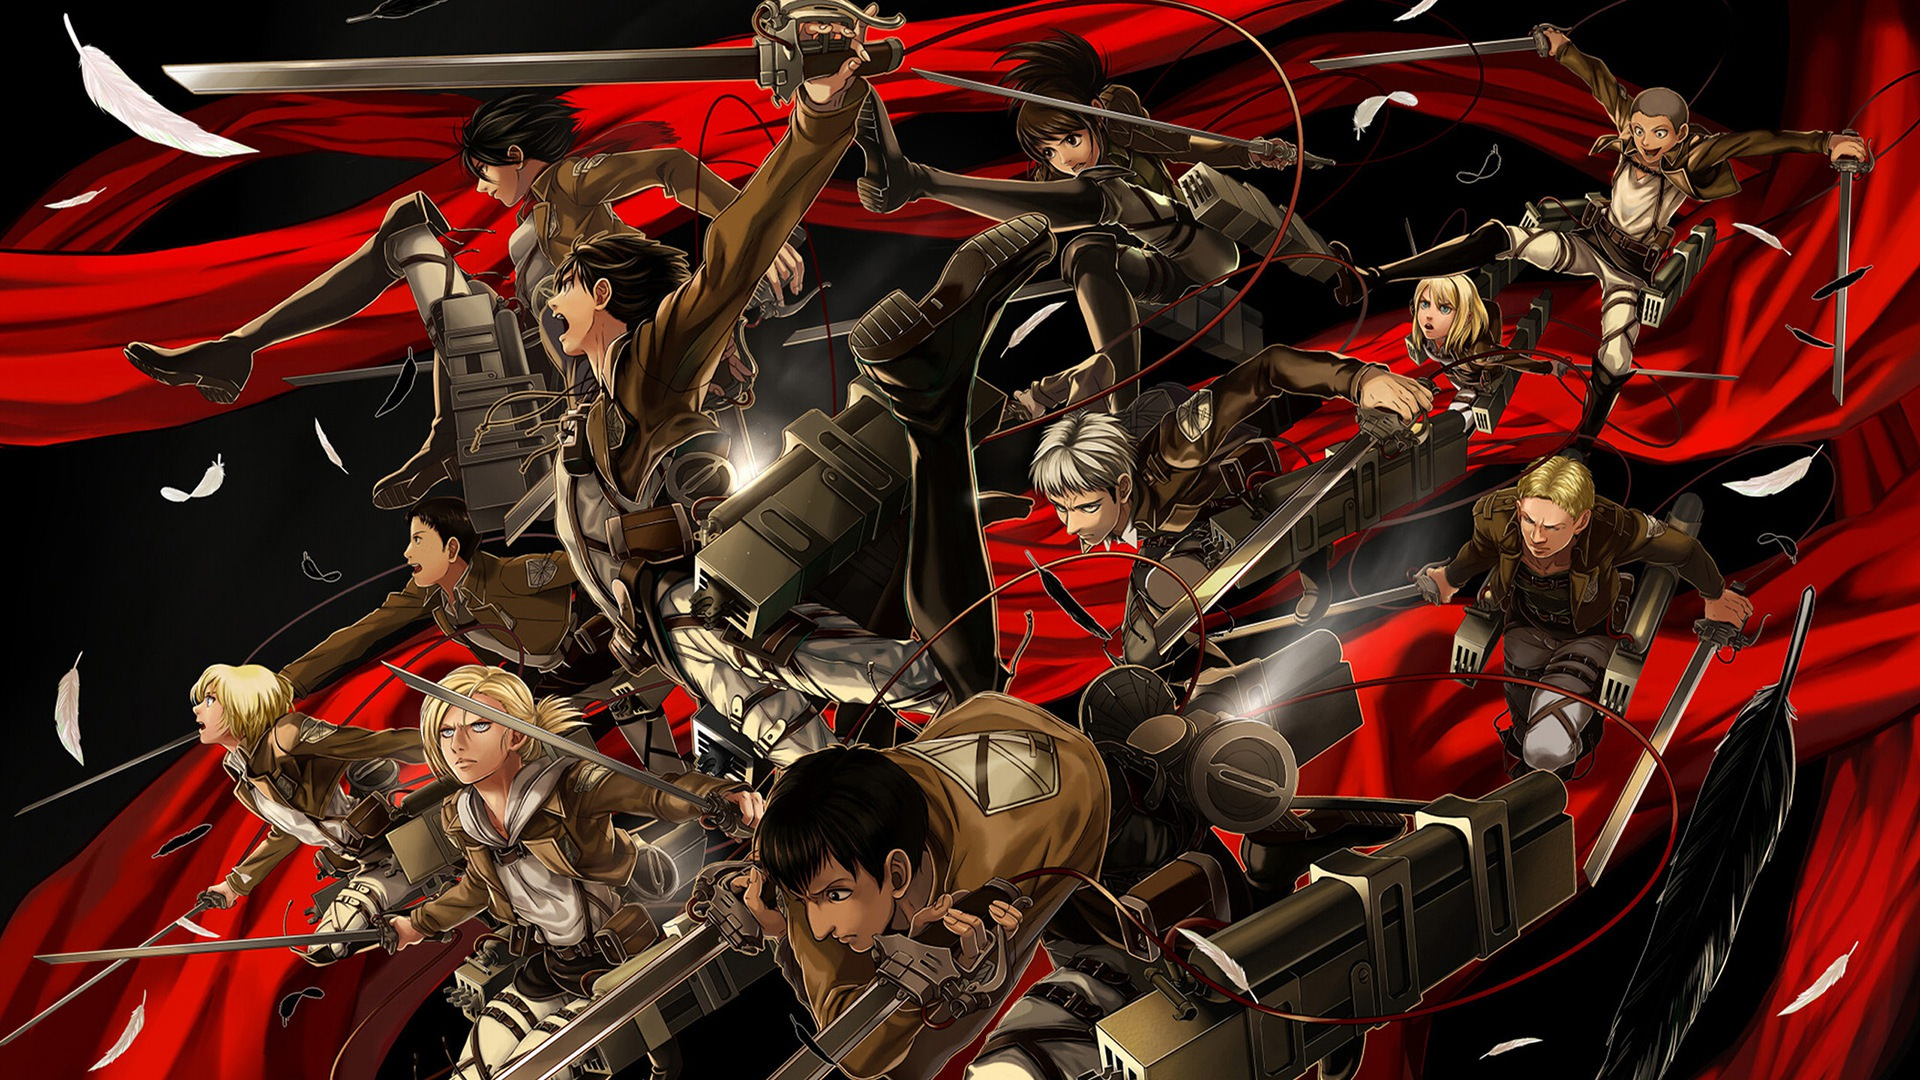 Attack On Titan Survey Corps Wallpapers Top Free Attack On Titan Survey Corps Backgrounds Wallpaperaccess